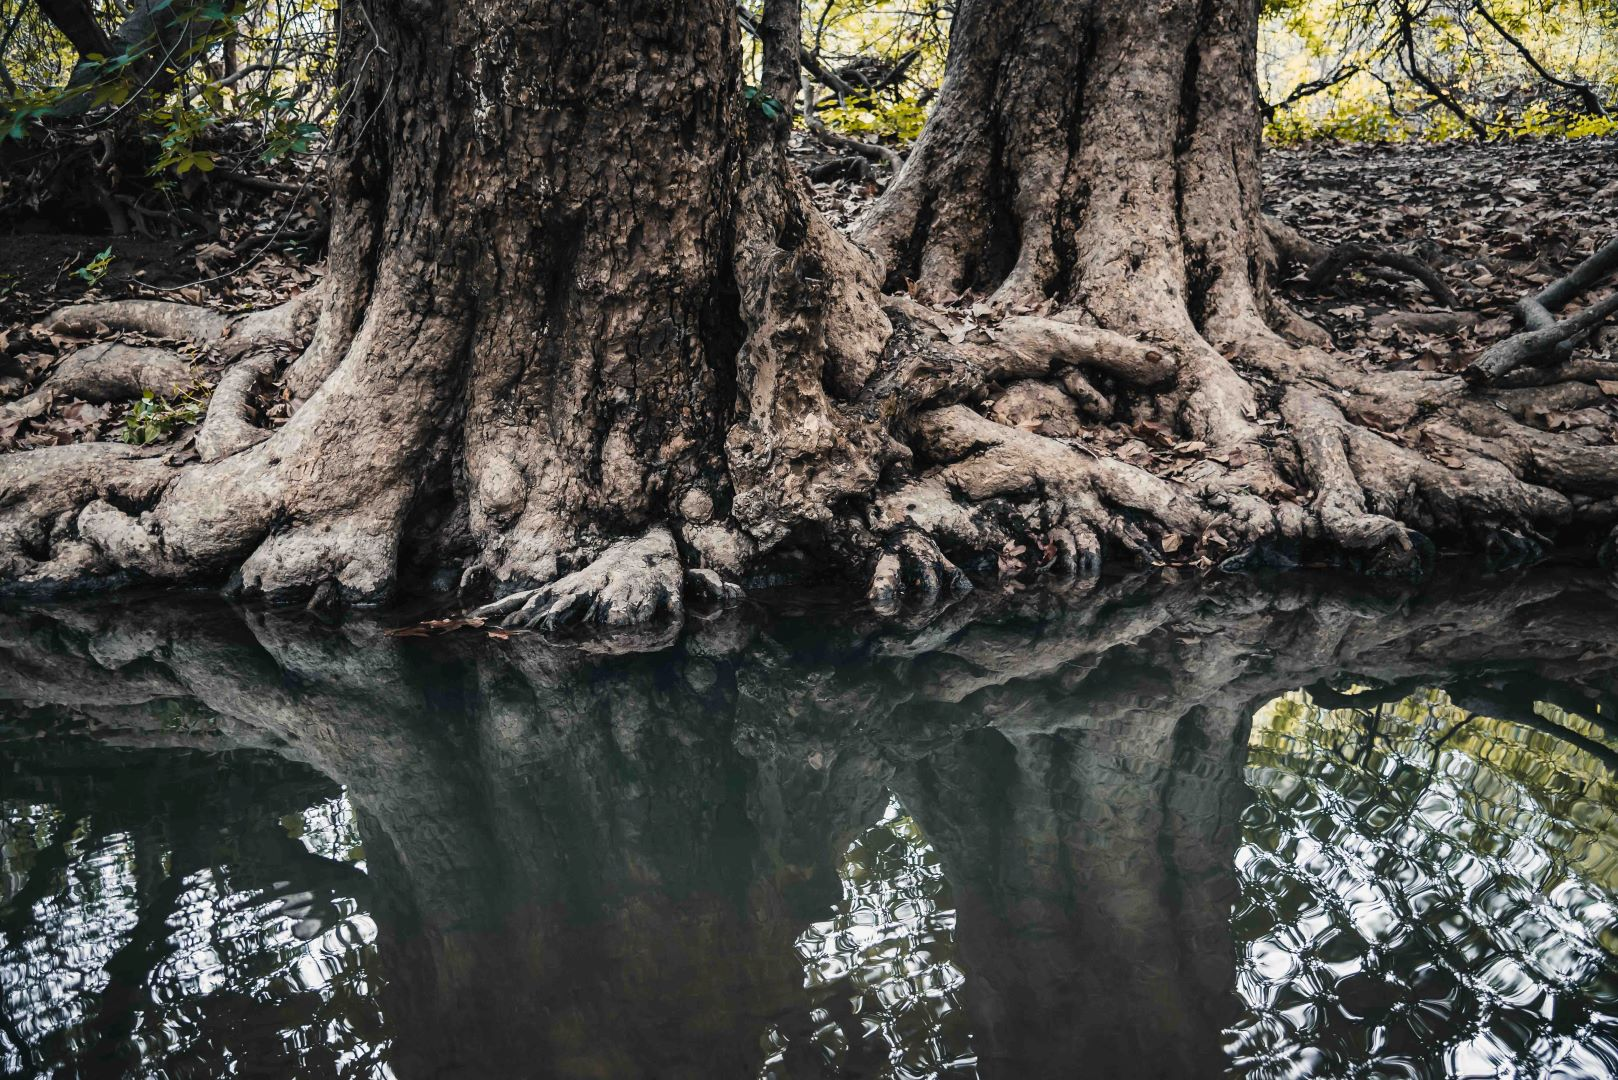 neilson photography bay area cupertino mcclellan ranch preserve entanglement roots trees